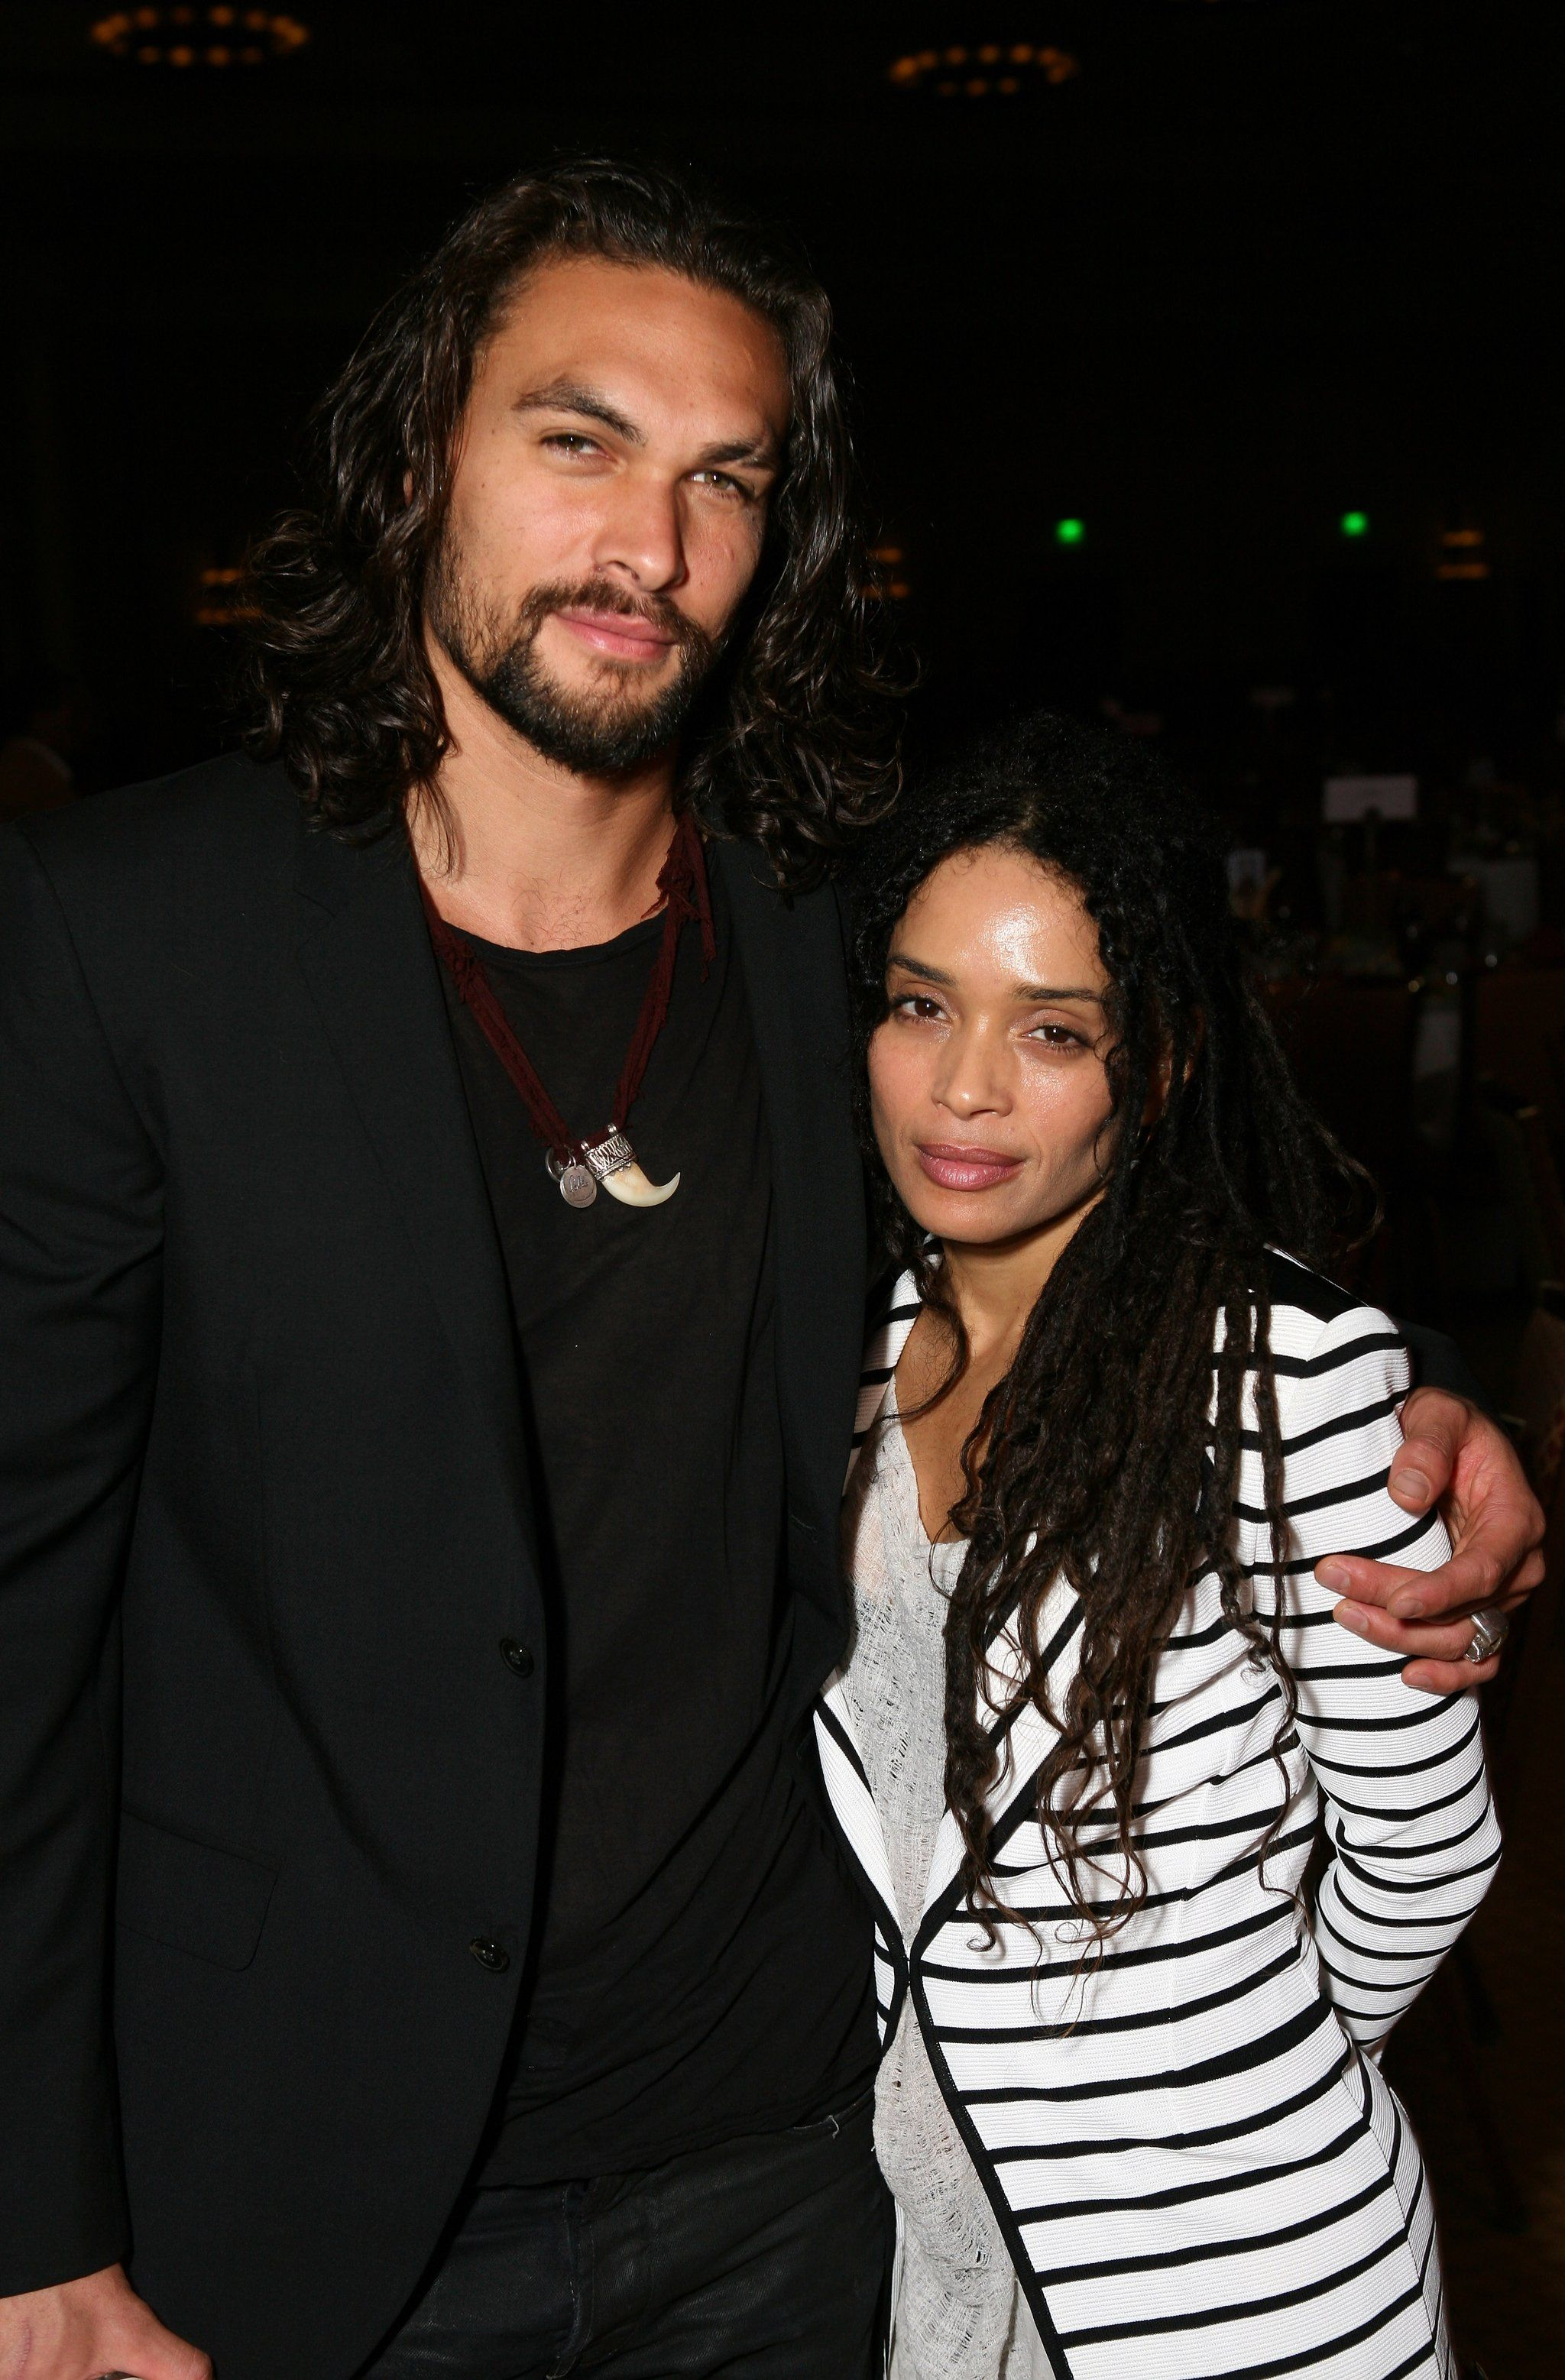 What's next for Jason Momoa and Lisa Bonet?